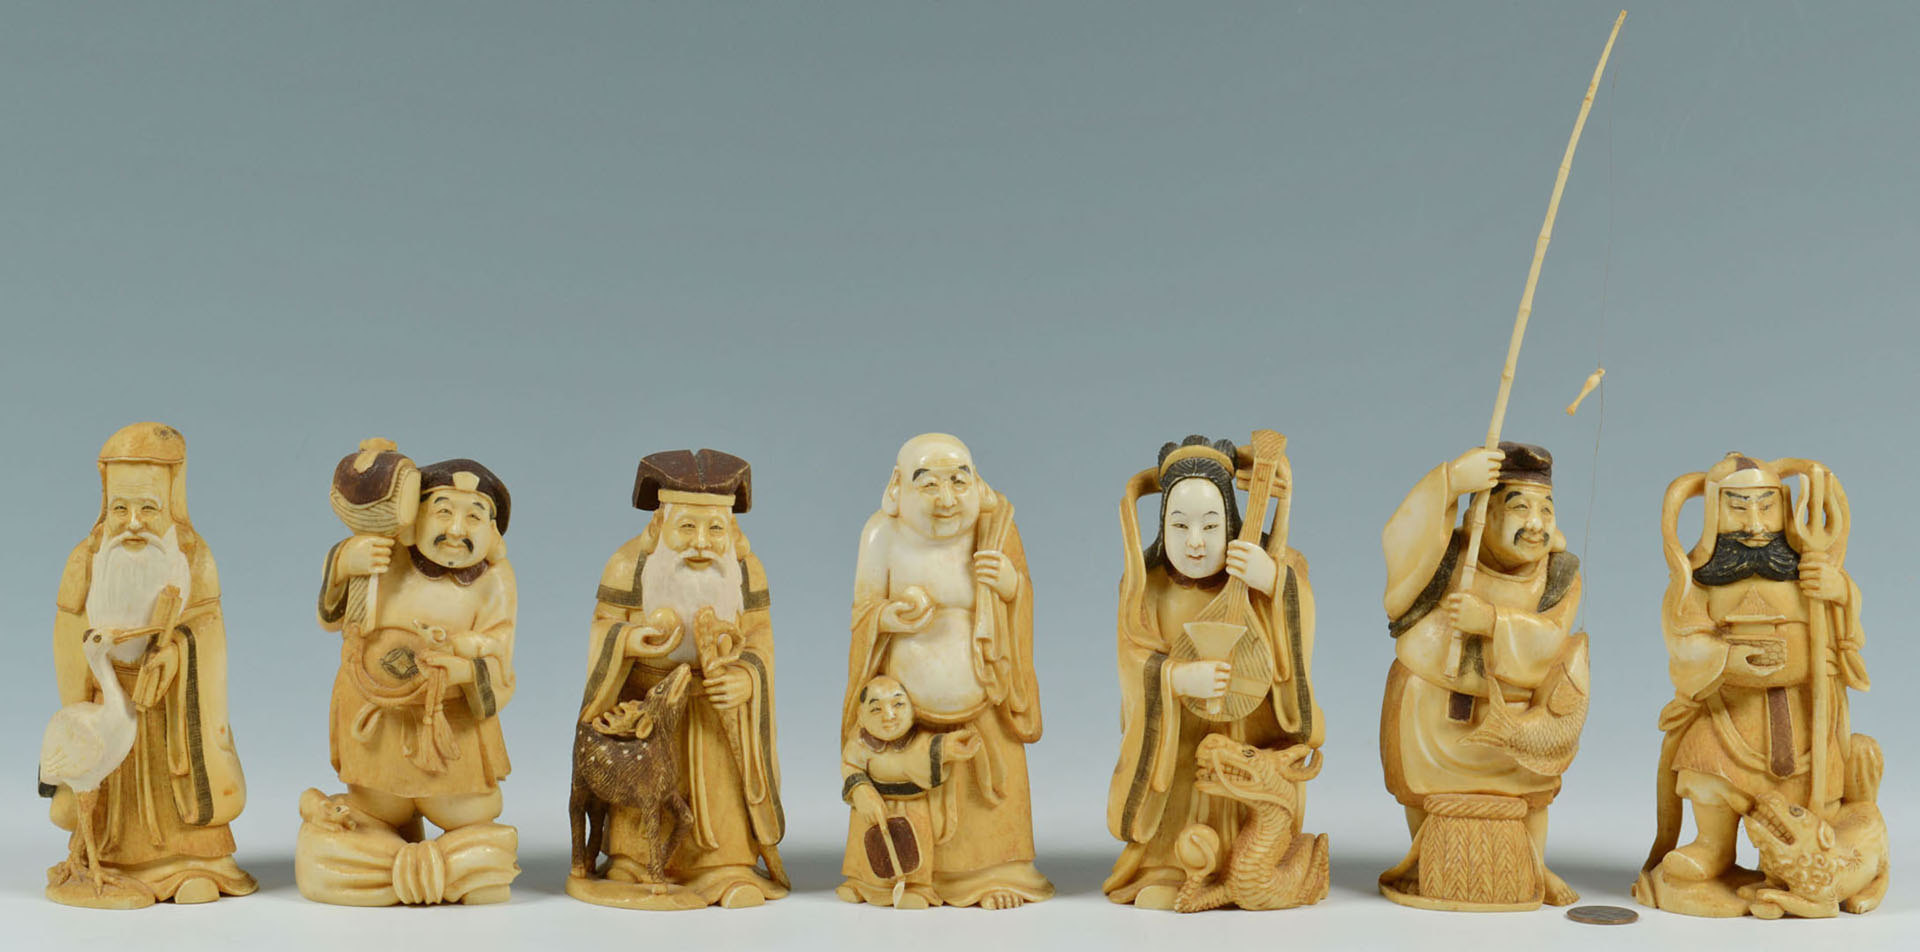 These Seven Lucky Gods were purchased 70 years ago. Is it legal to have them?